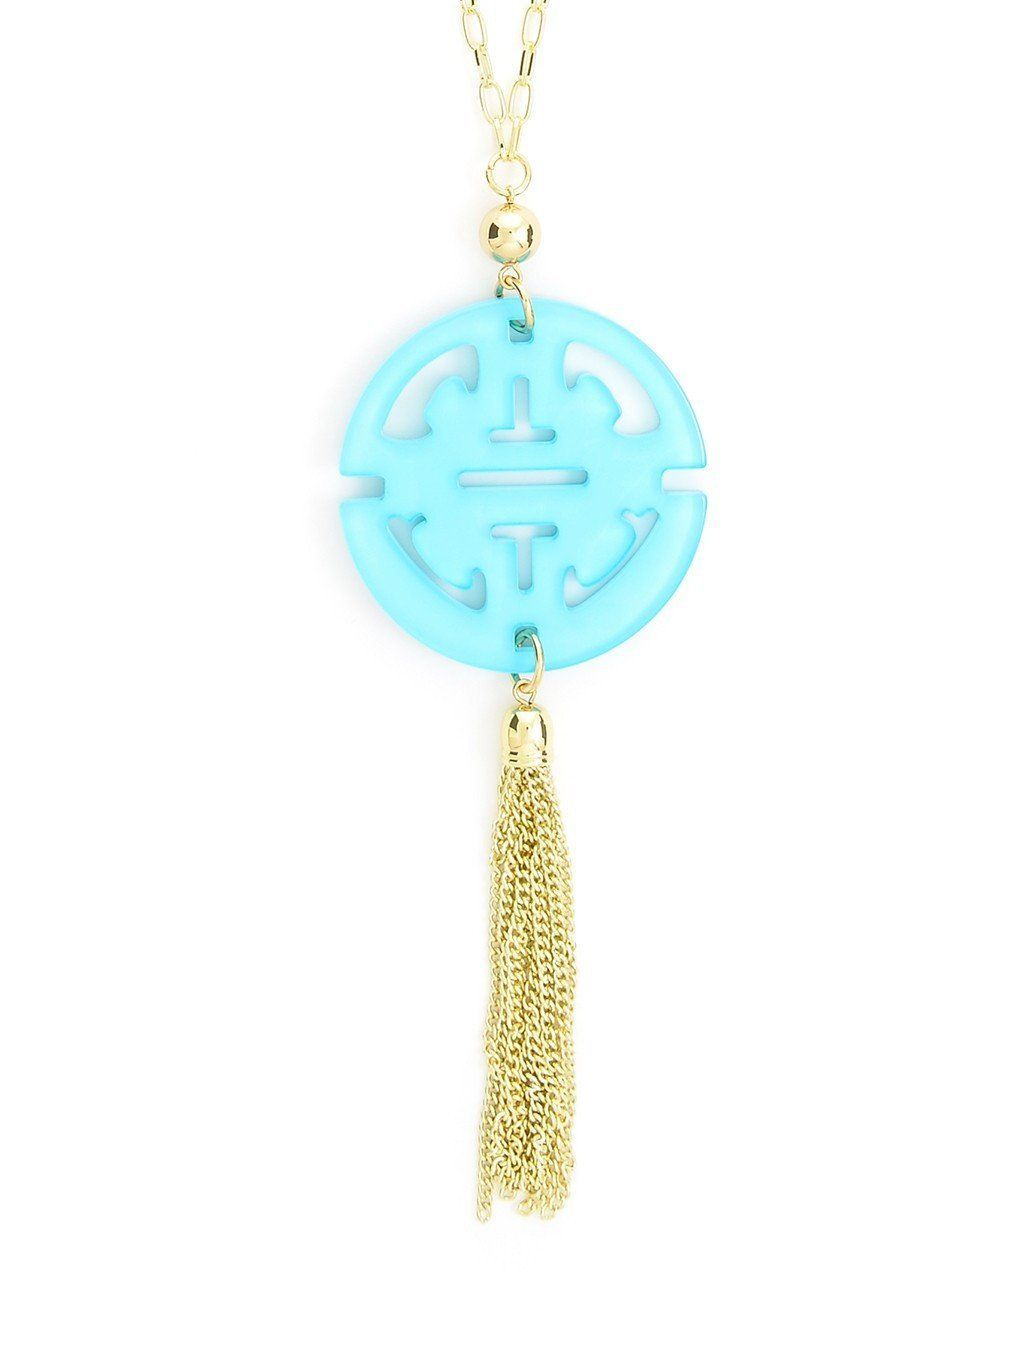 Zenzii resin traveling tassel necklace in products